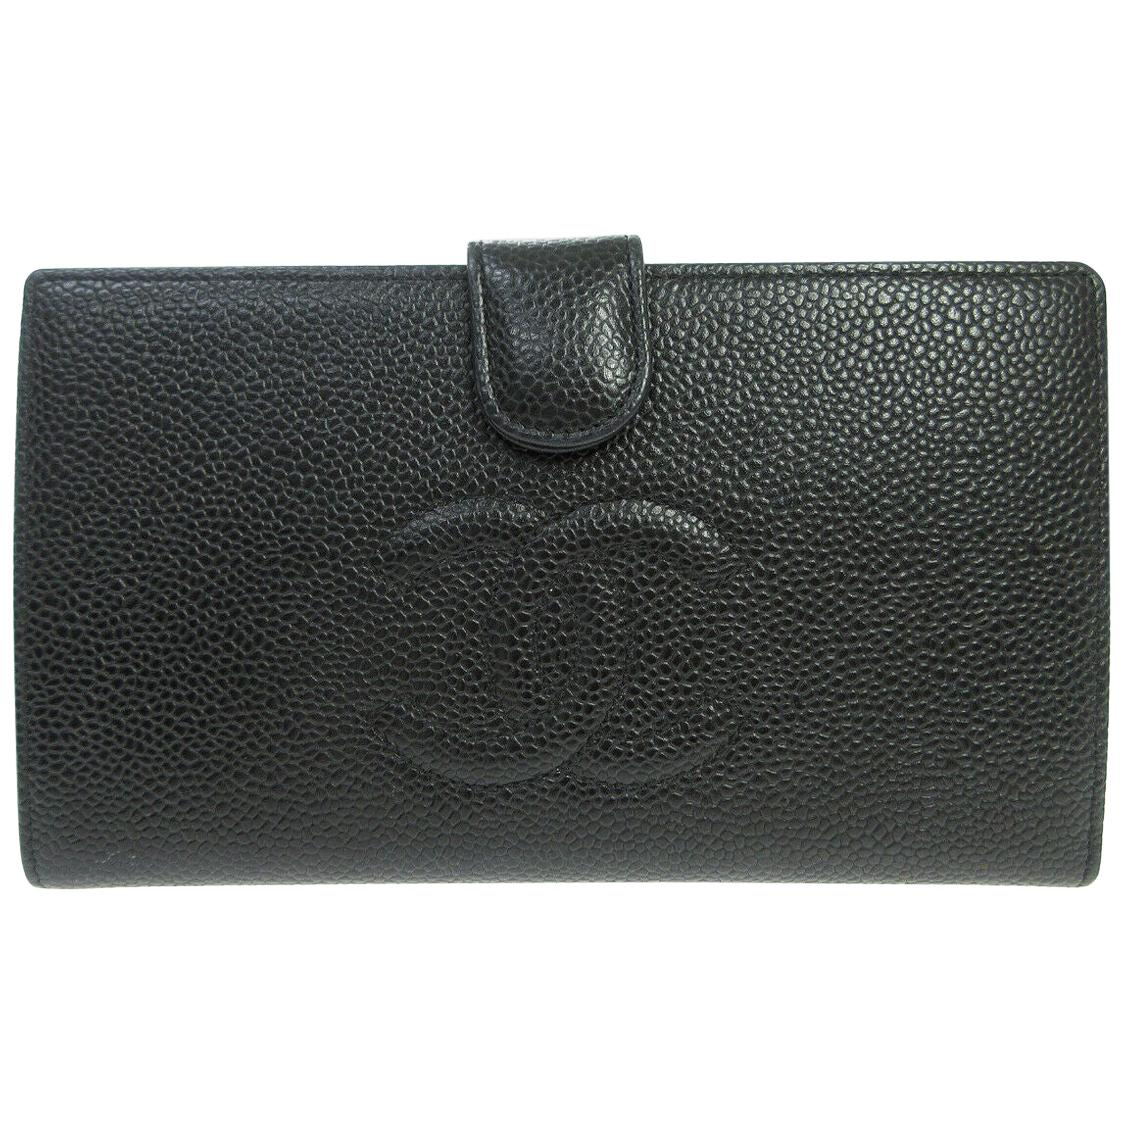 Chanel Black Caviar Leather CC Evening Envelope Clutch Wallet in Box